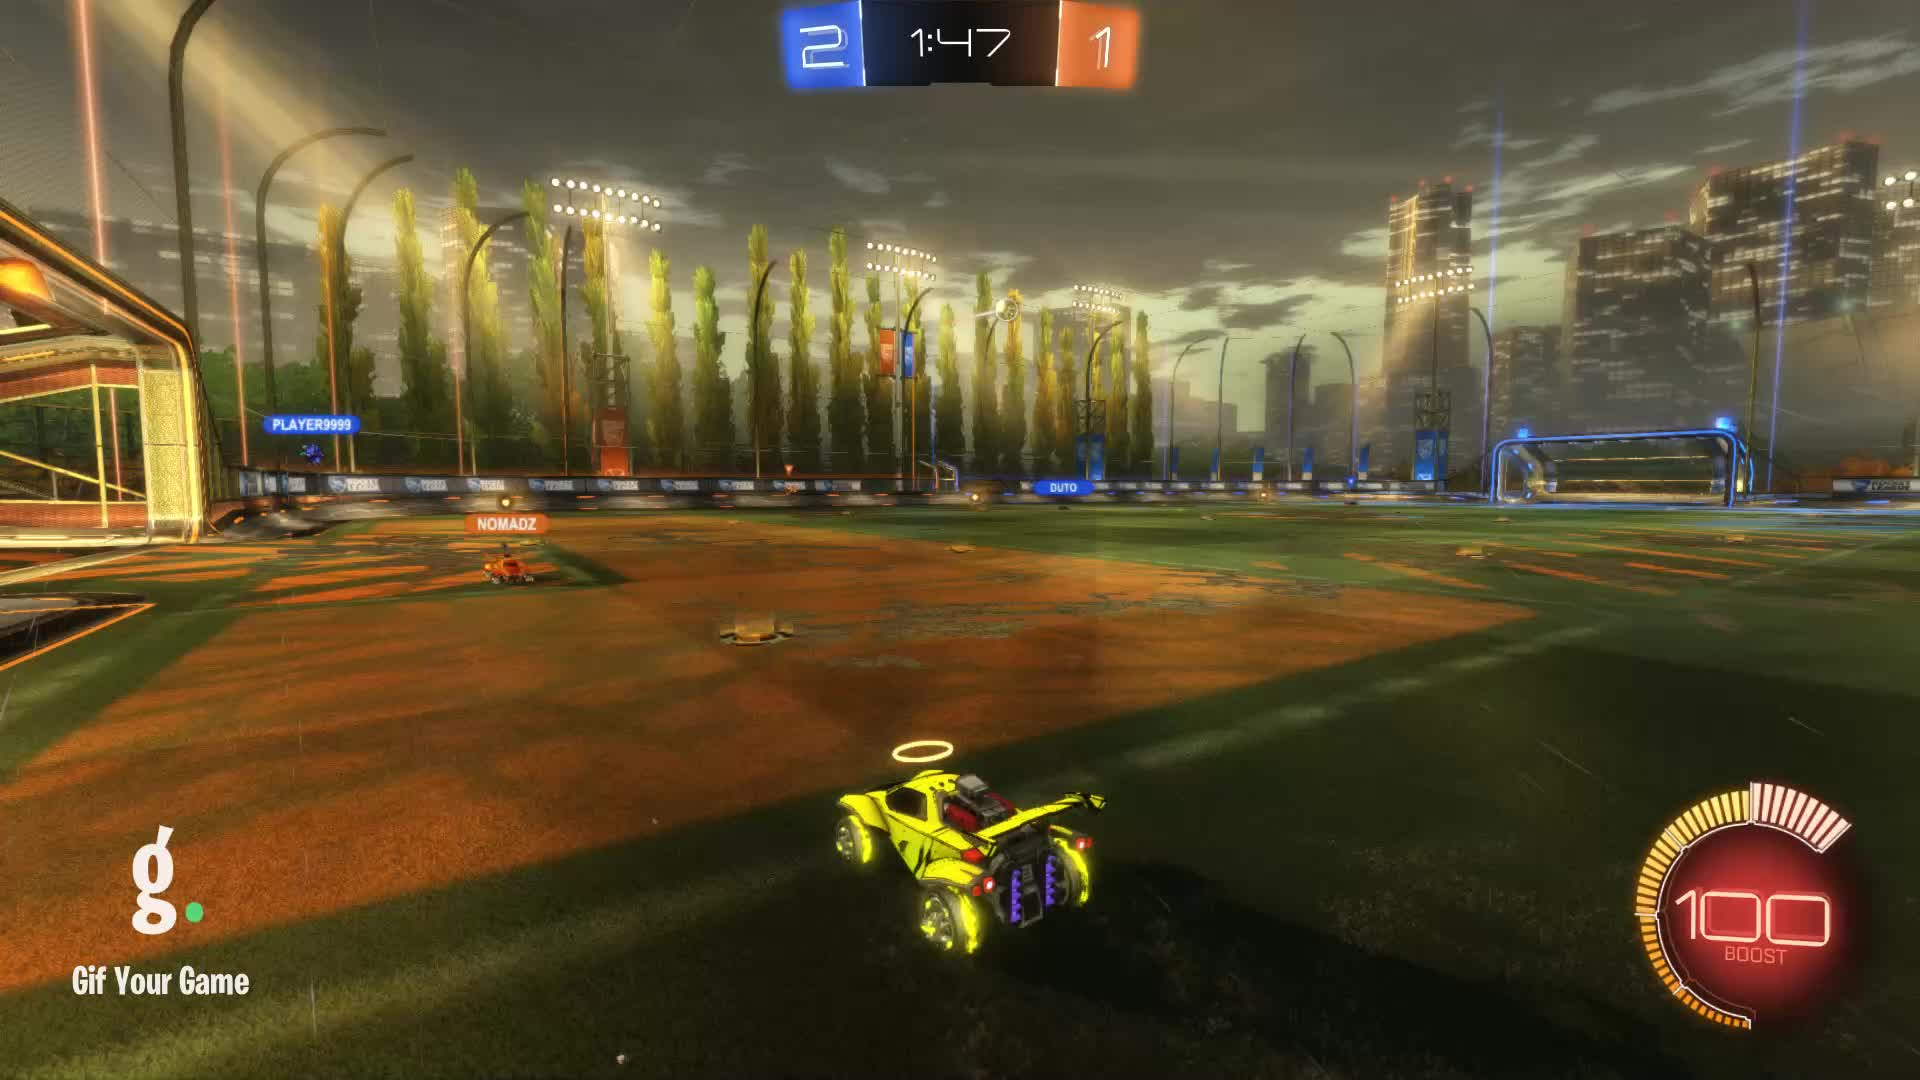 Gif Your Game, GifYourGame, LFT | Hawk, Rocket League, RocketLeague, Goal 4: PORTUGAL GIFs